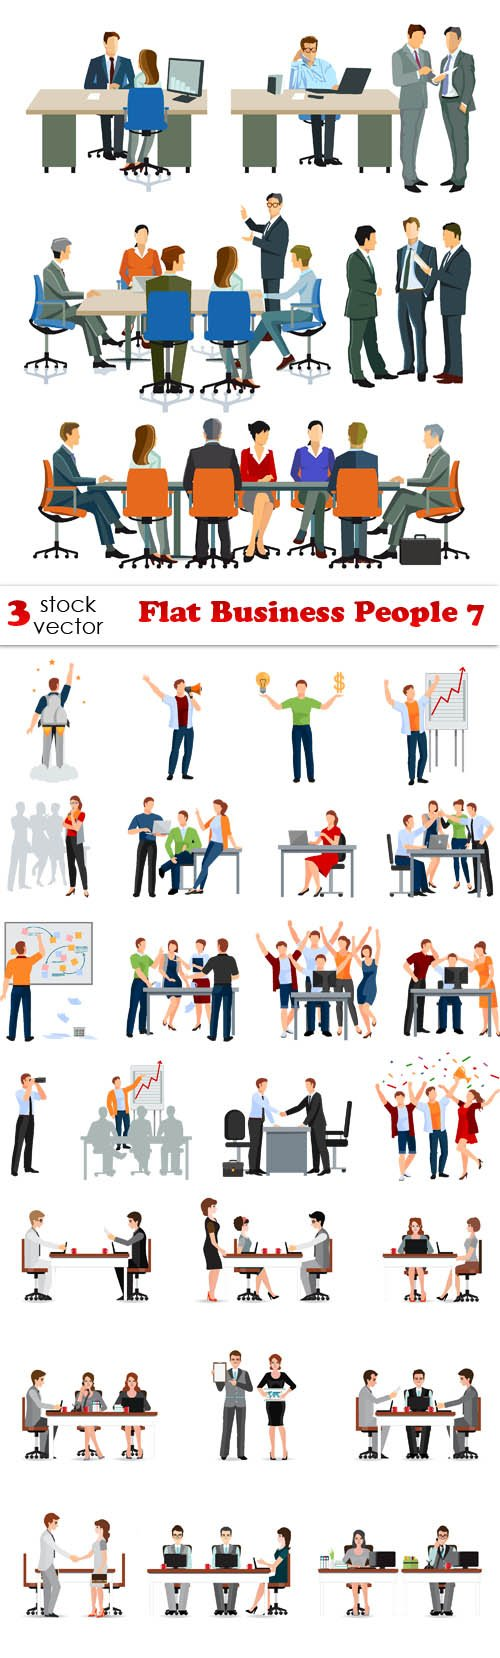 Vectors - Flat Business People 7